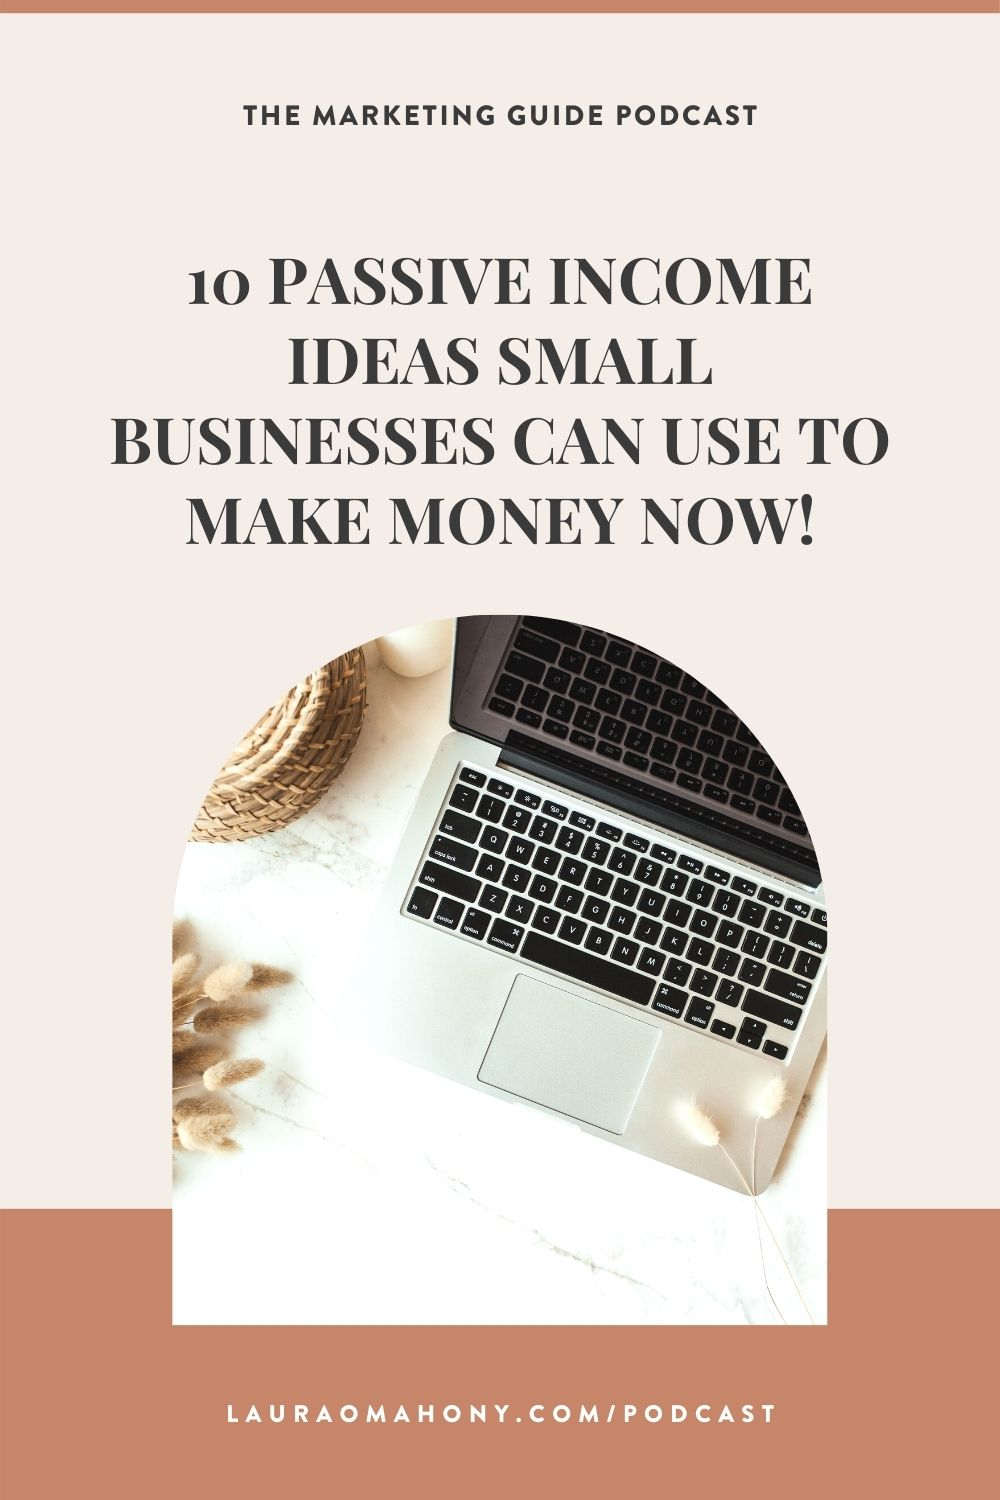 The Marketing Guide Podcast 10 Passive income ideas small businesses can use to make money now